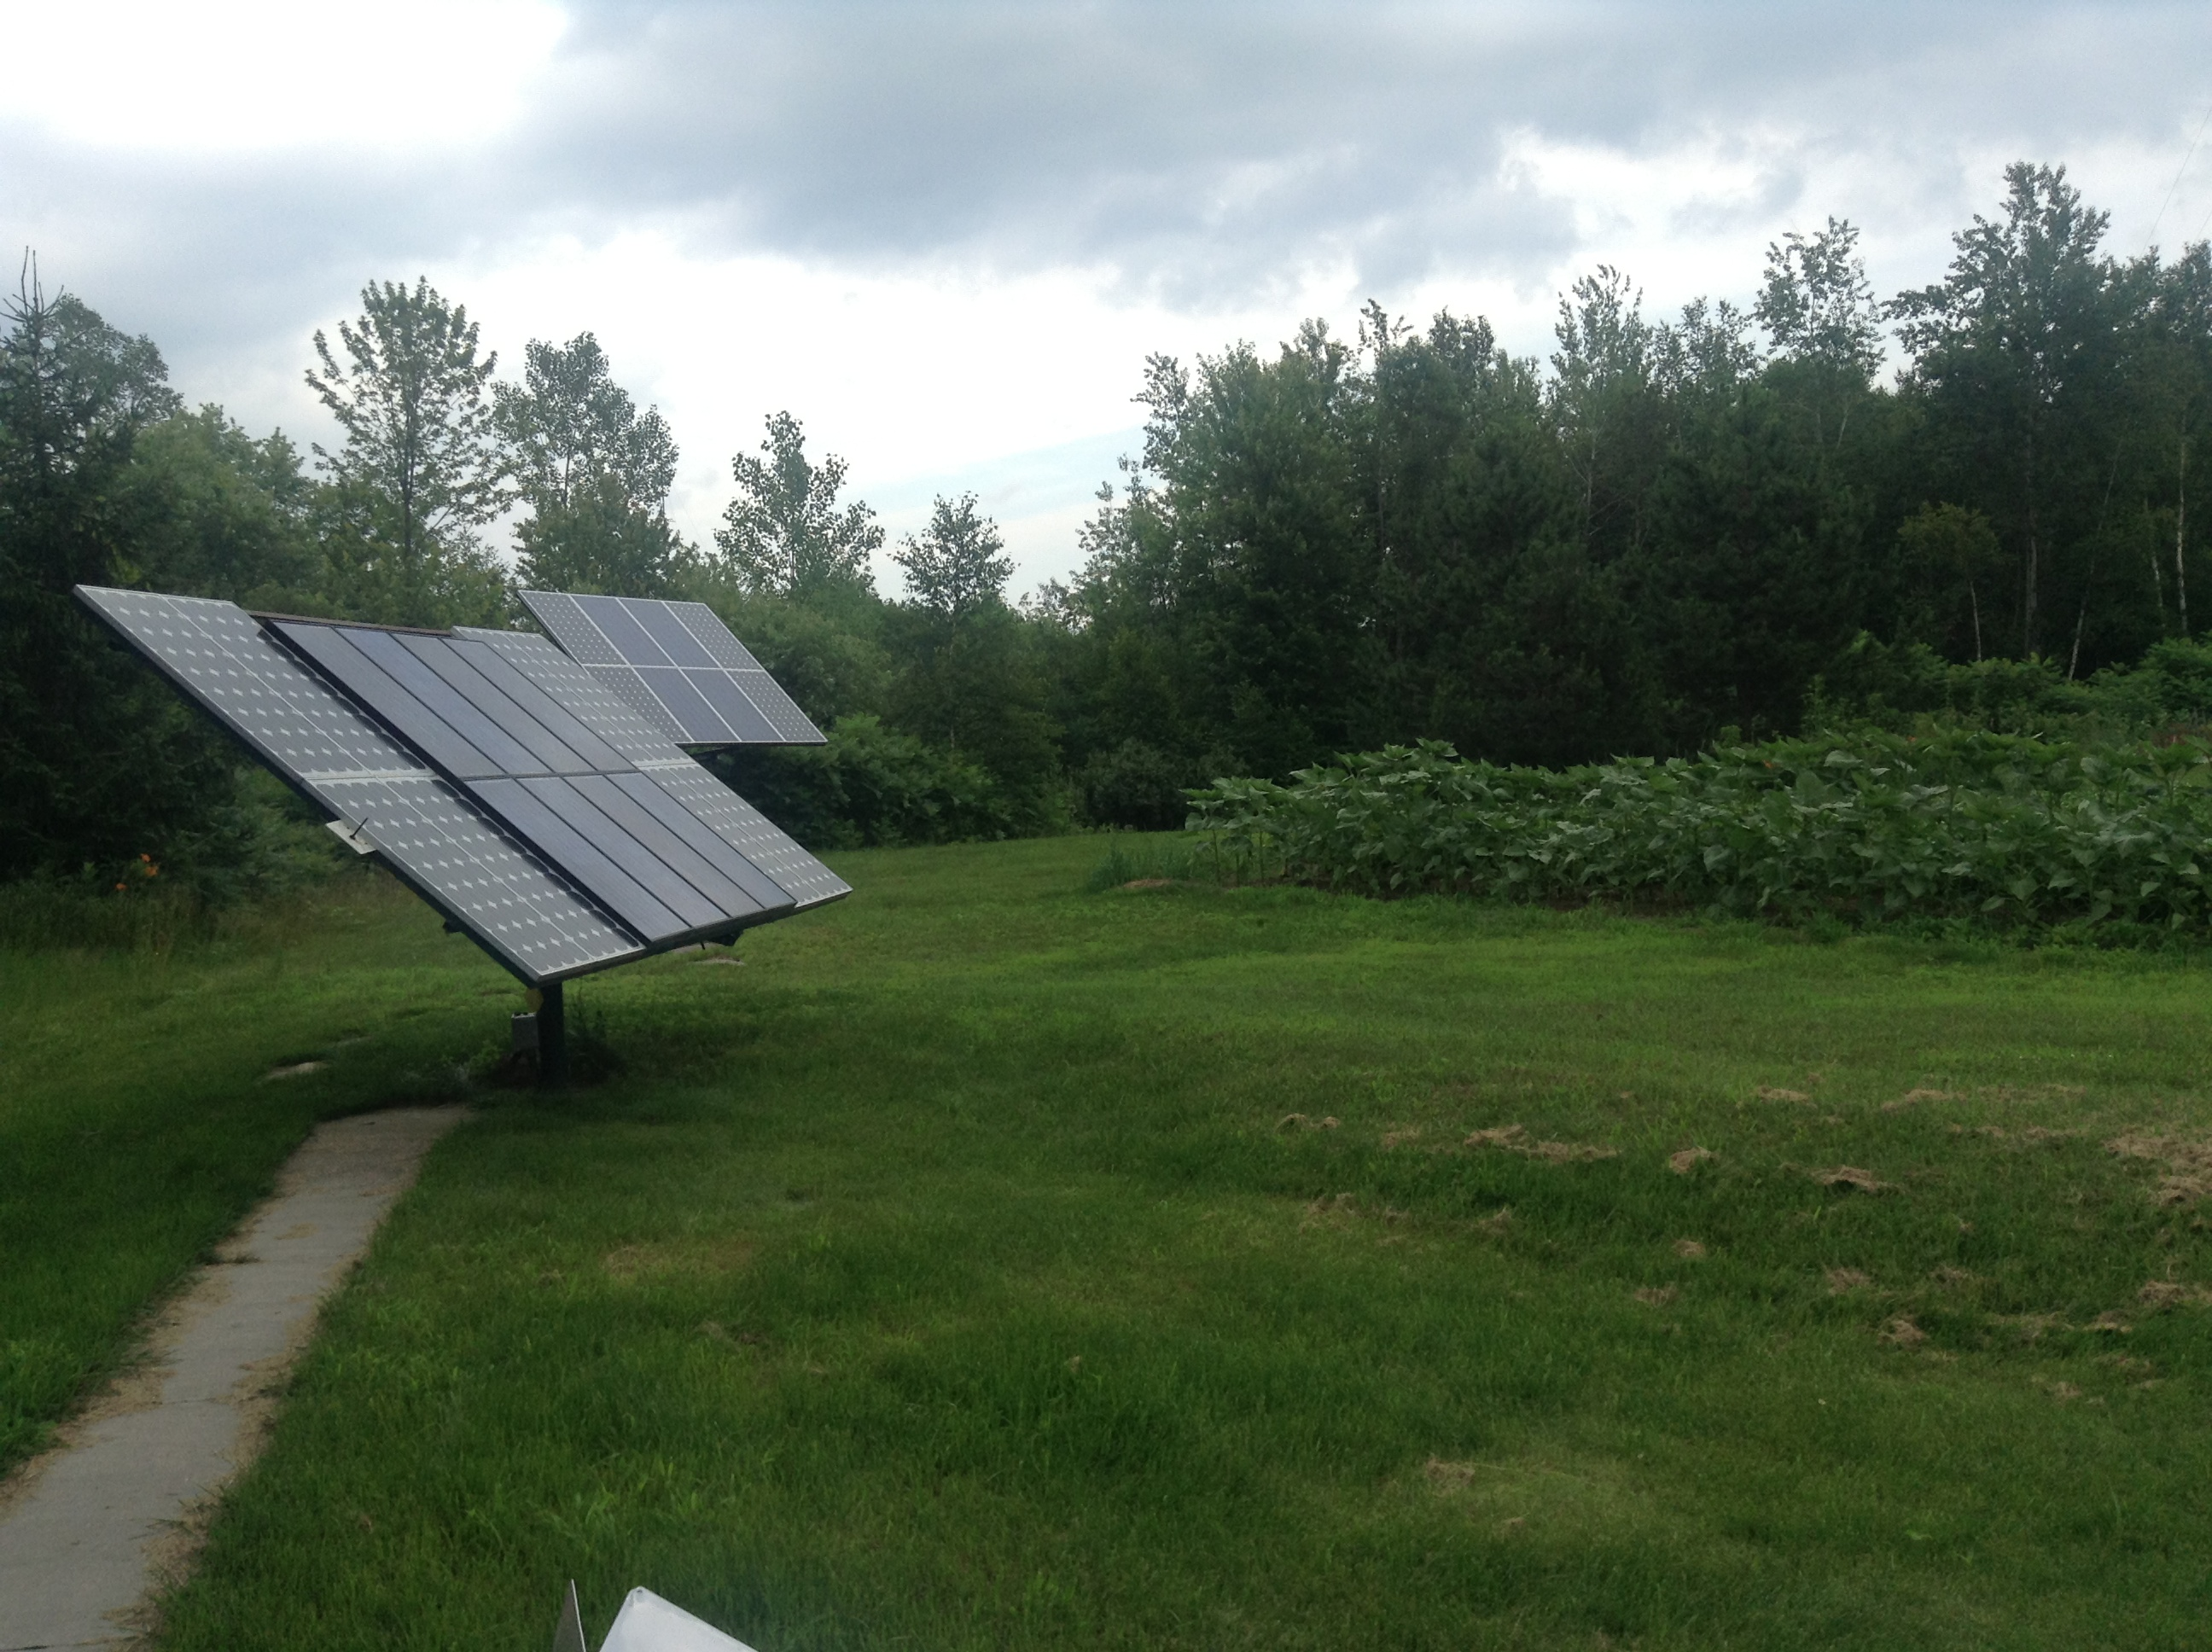 Solar panels on a completely off-grid farm